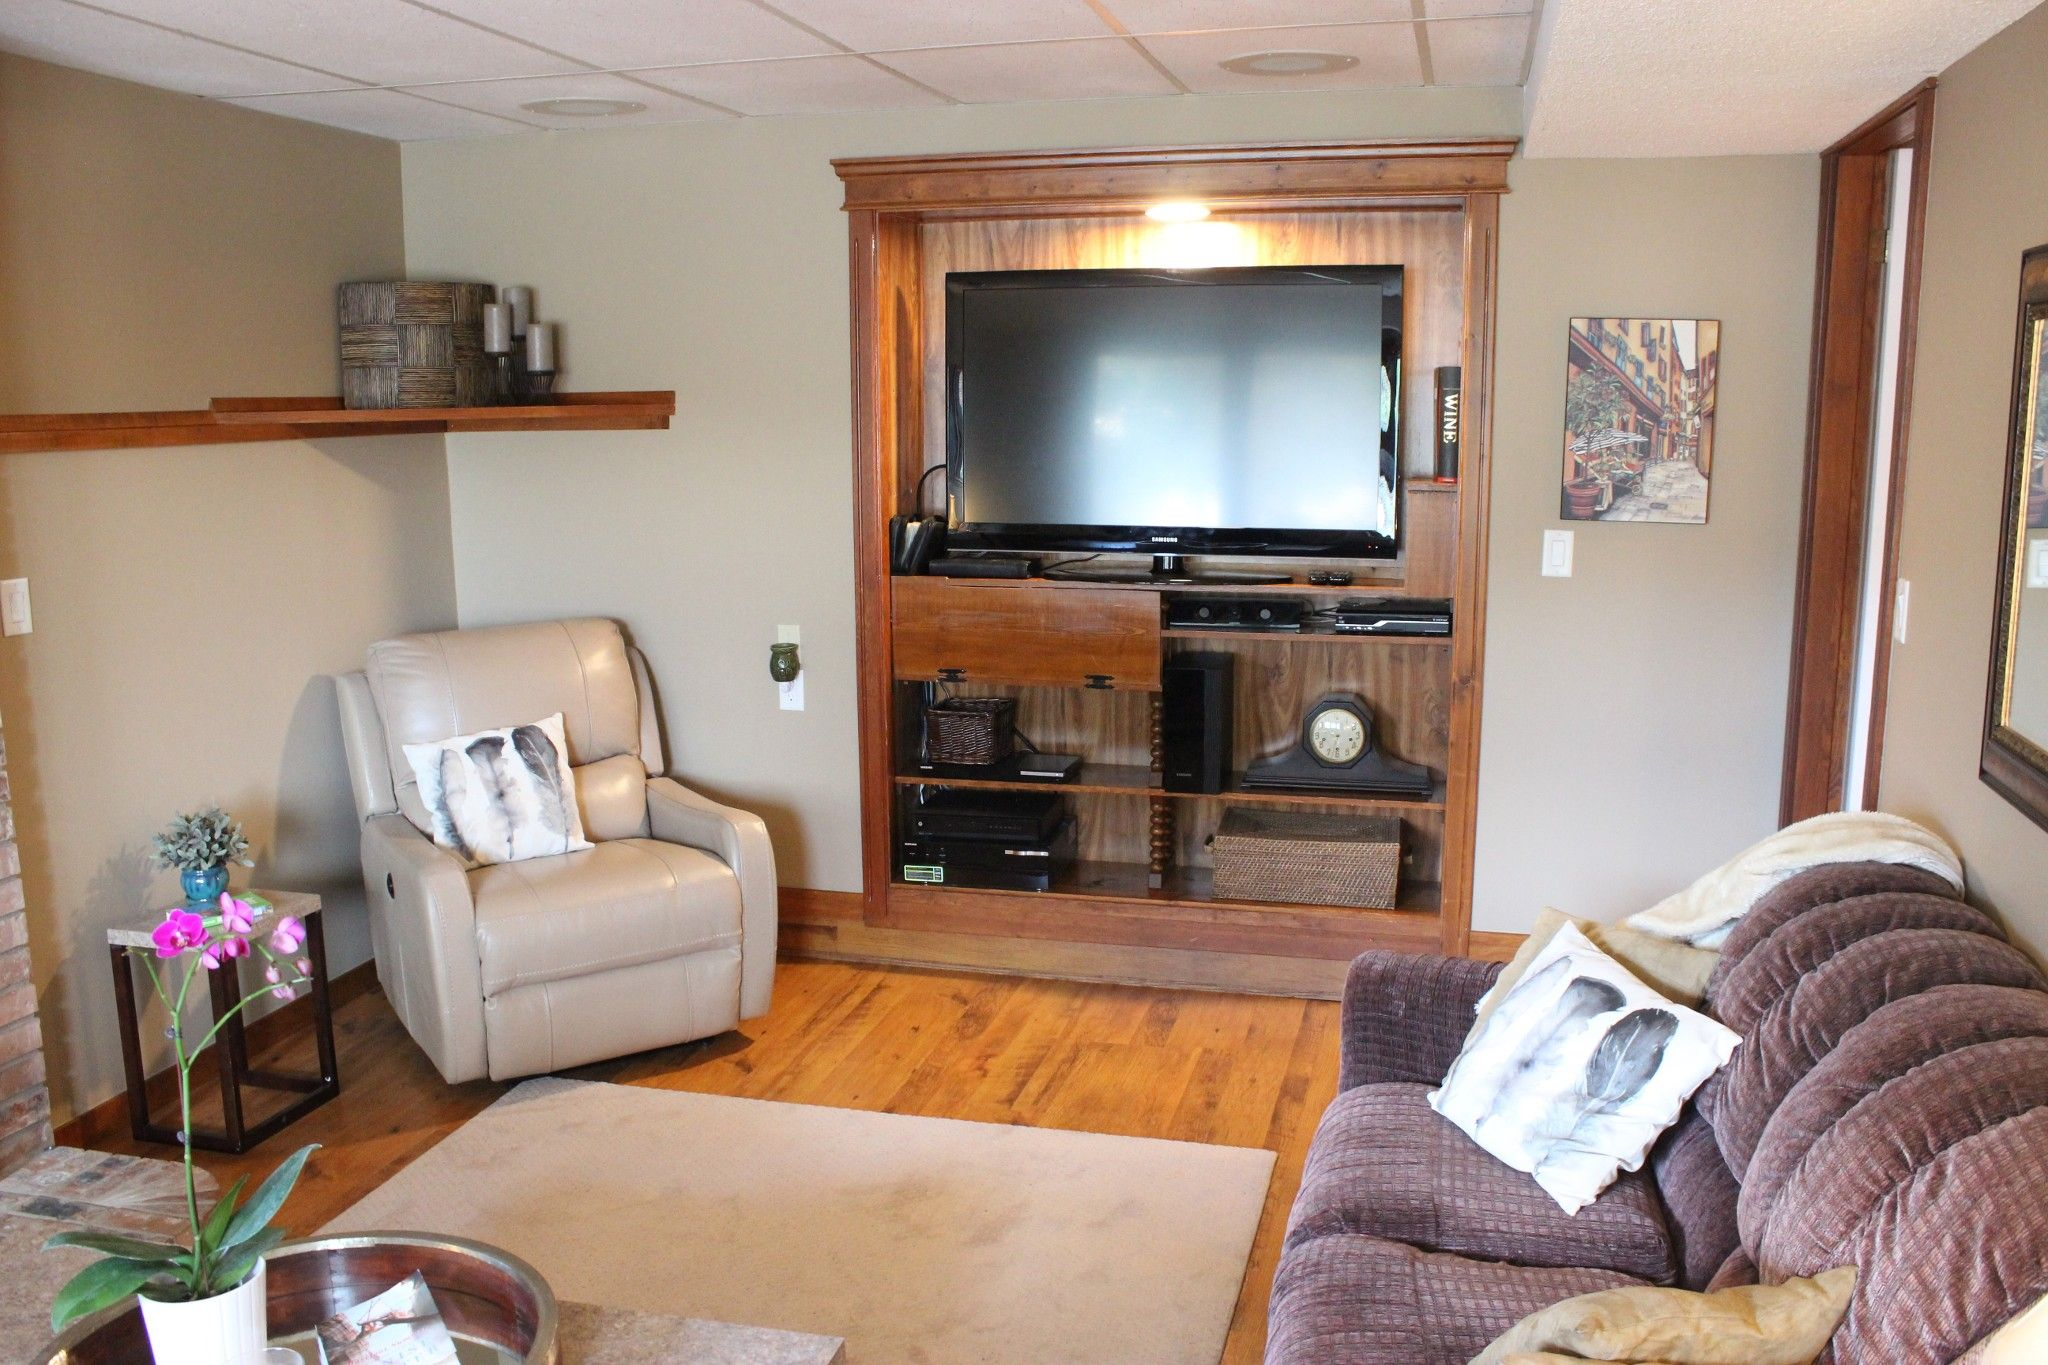 Photo 17: Photos: 3461 Navatanee Drive in Kamloops: South Thompson Valley House for sale : MLS®# 150033